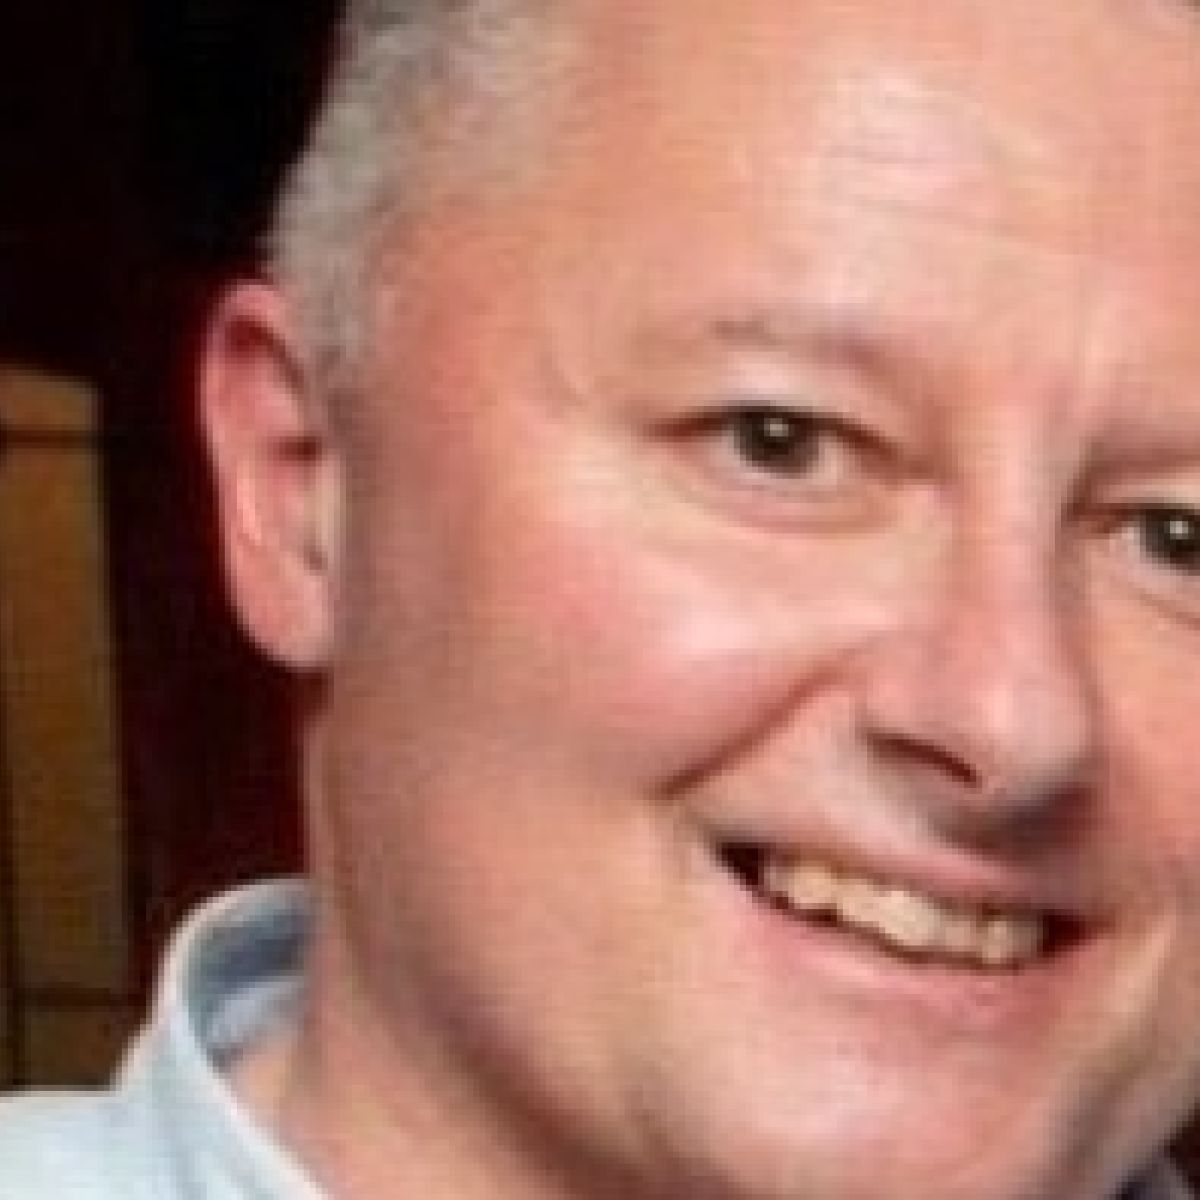 Detective Garda Colm Horkan shot after stopping man acting